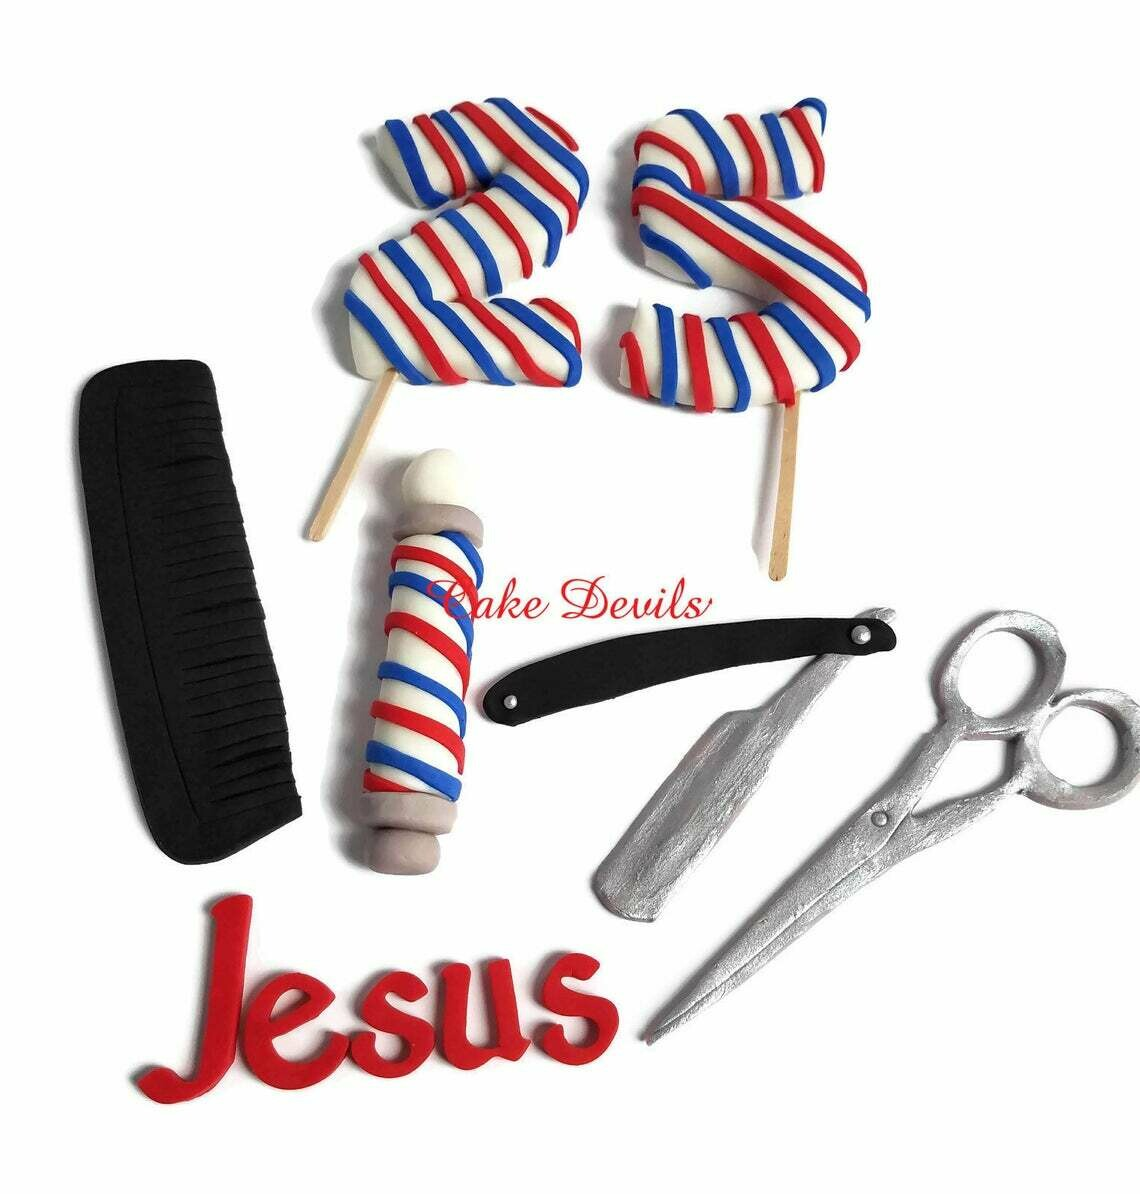 Barber Shop Cake Toppers, Fondant Comb & Scissors Cake Toppers